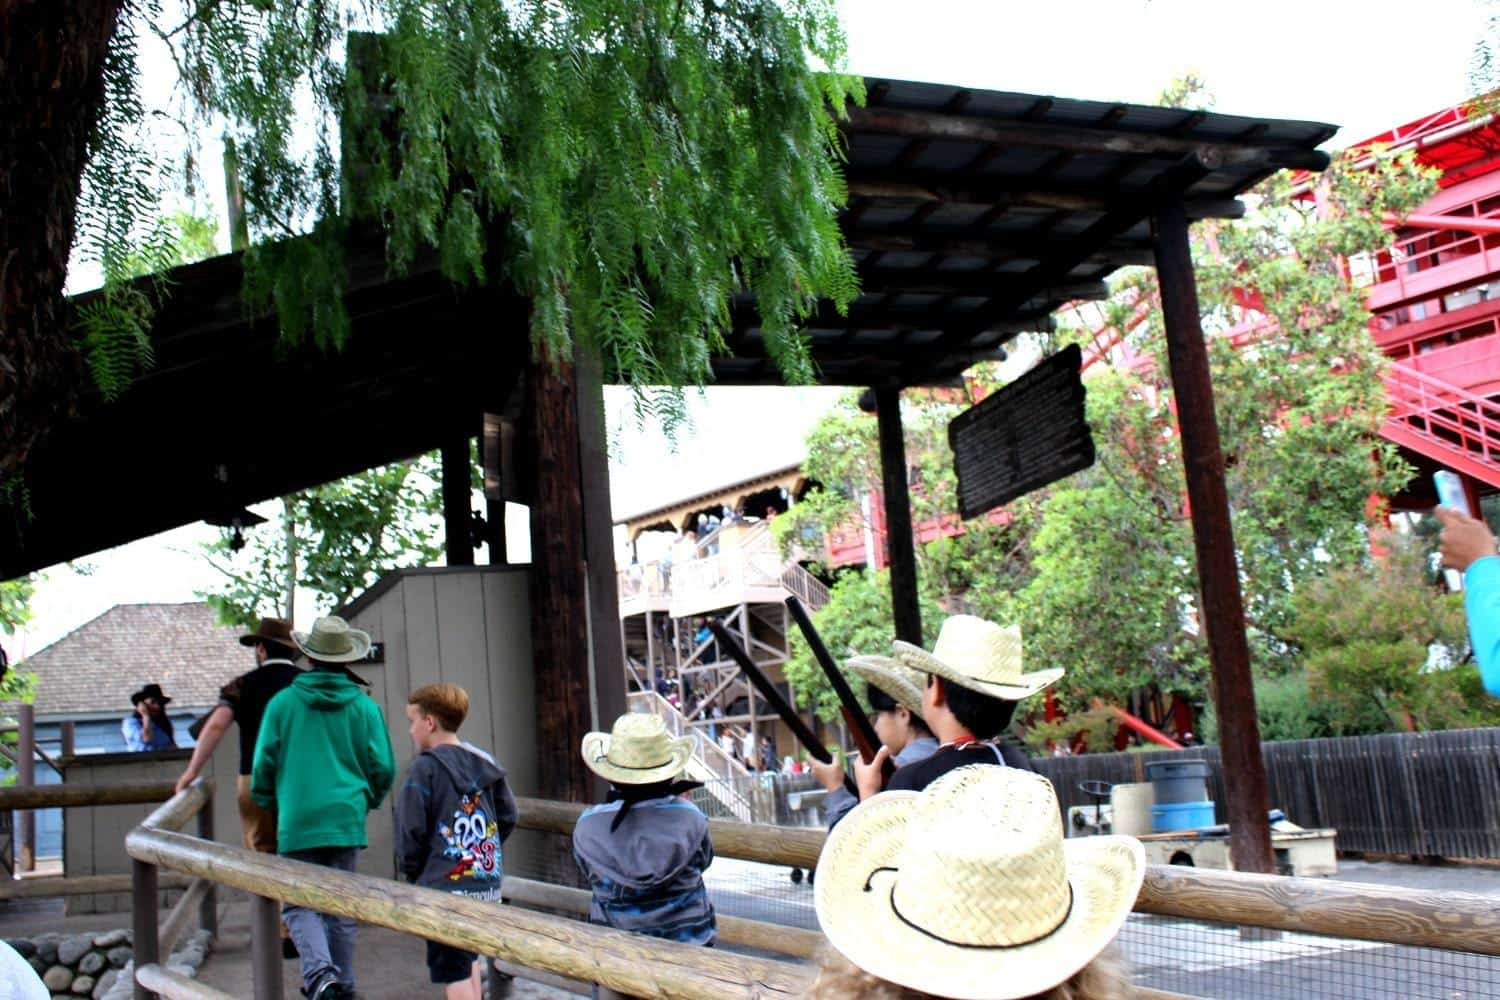 Why Your Kids Will Love Summer at Knott's Berry Farm | Buena Park, CA